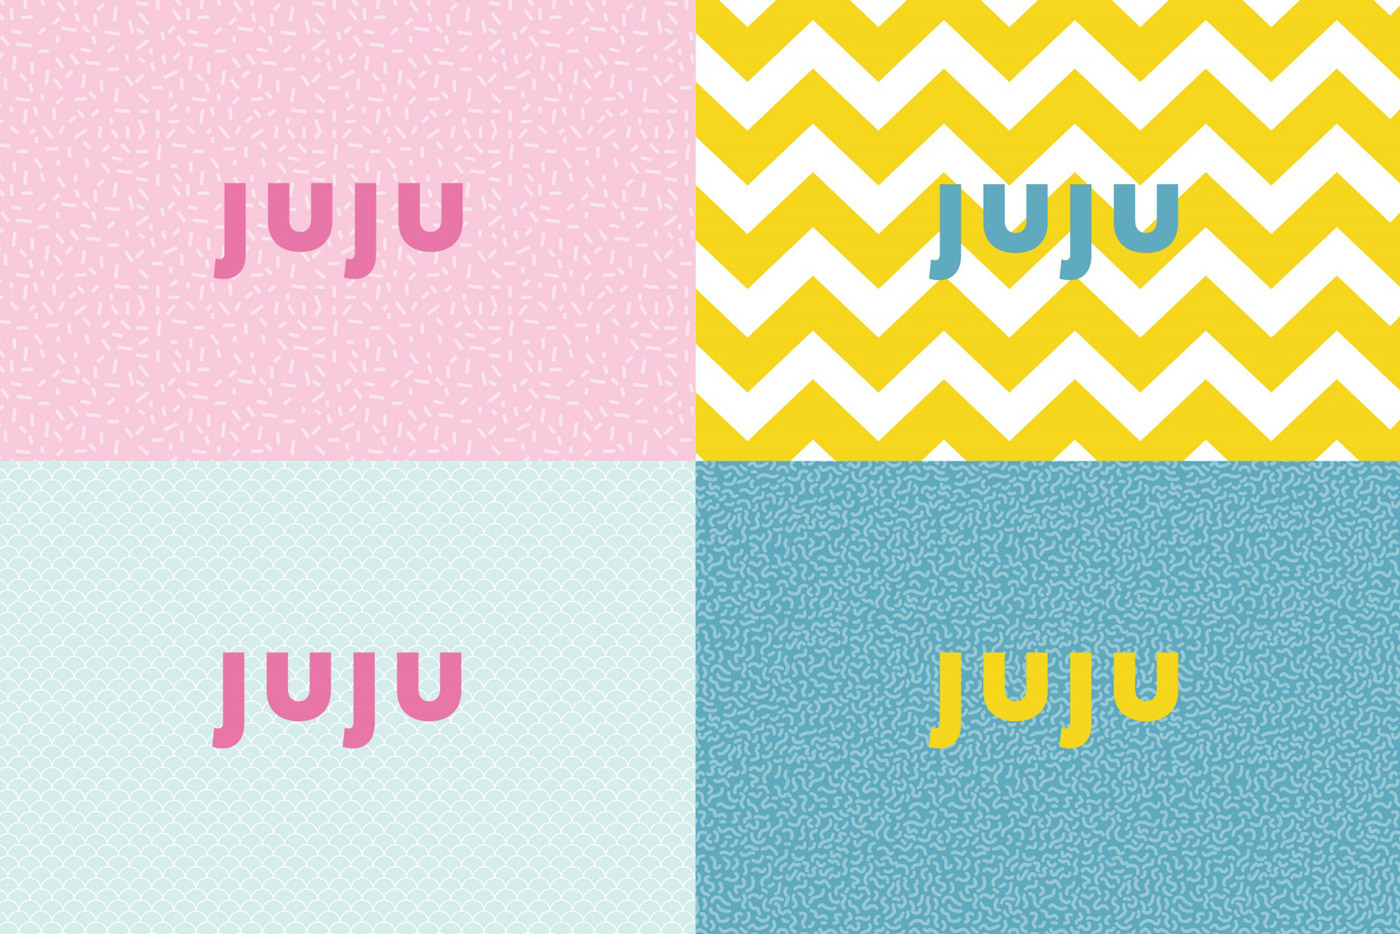 Food and beverage branding by Fable for JUJU.